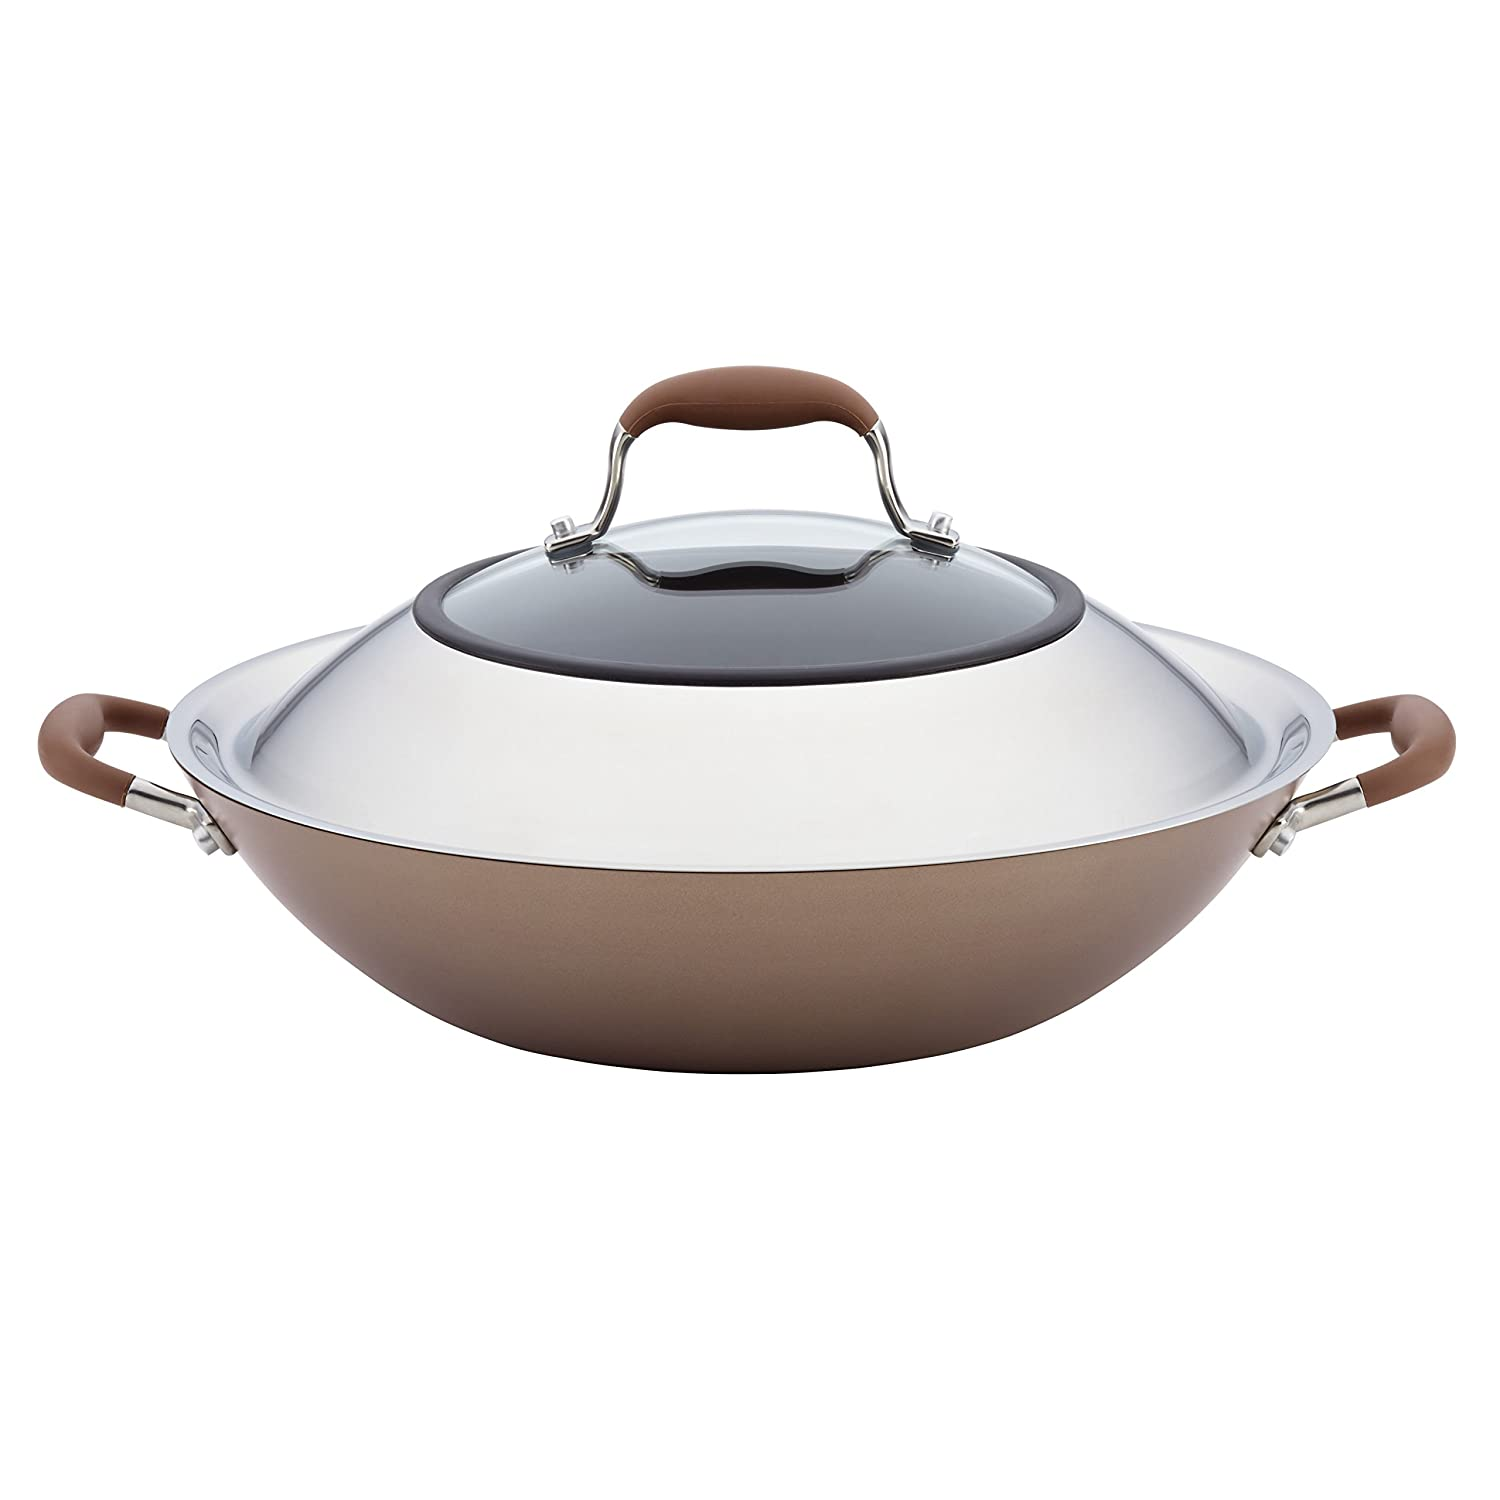 Anolon Advanced Bronze Hard-Anodized Nonstick 14-Inch Covered Wok Meyer 84058